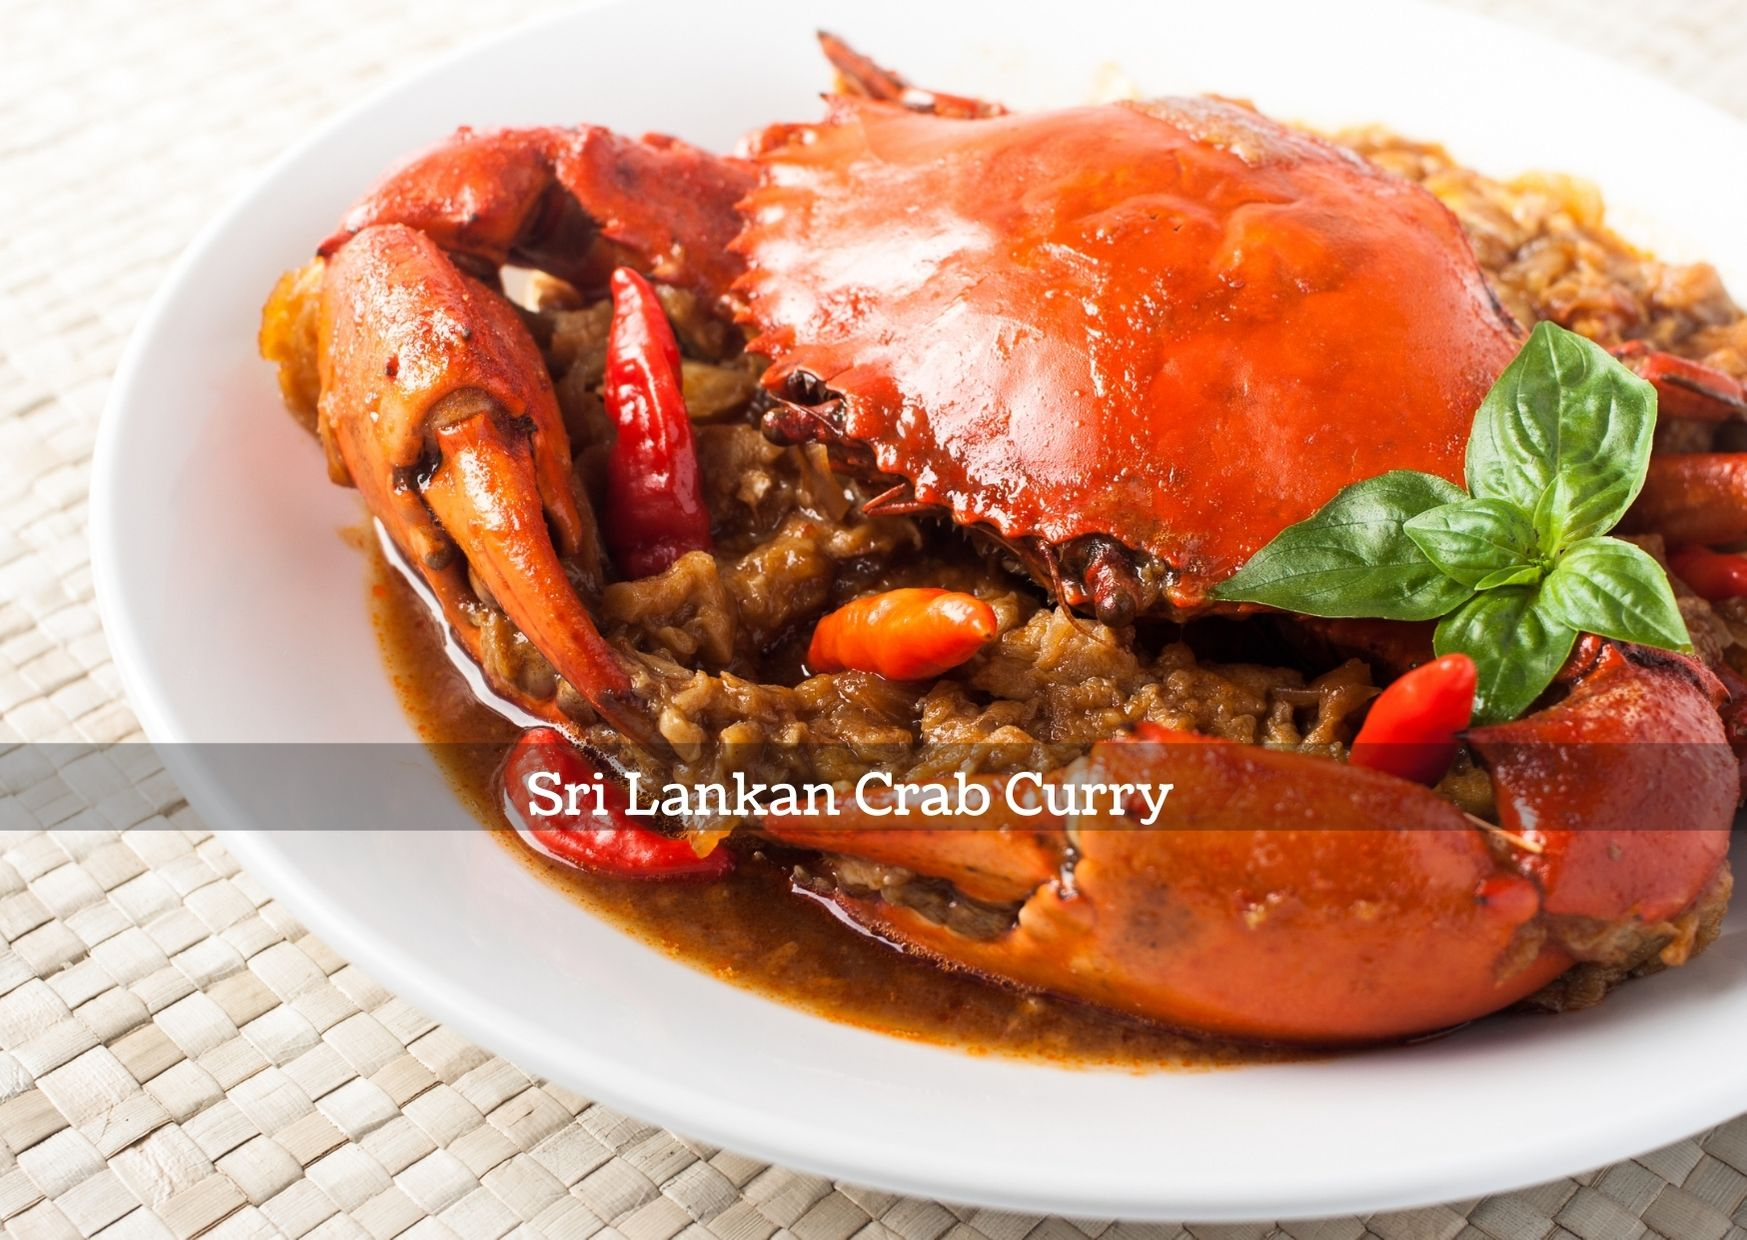 Sri Lankan Crab Curry from Cucini Express